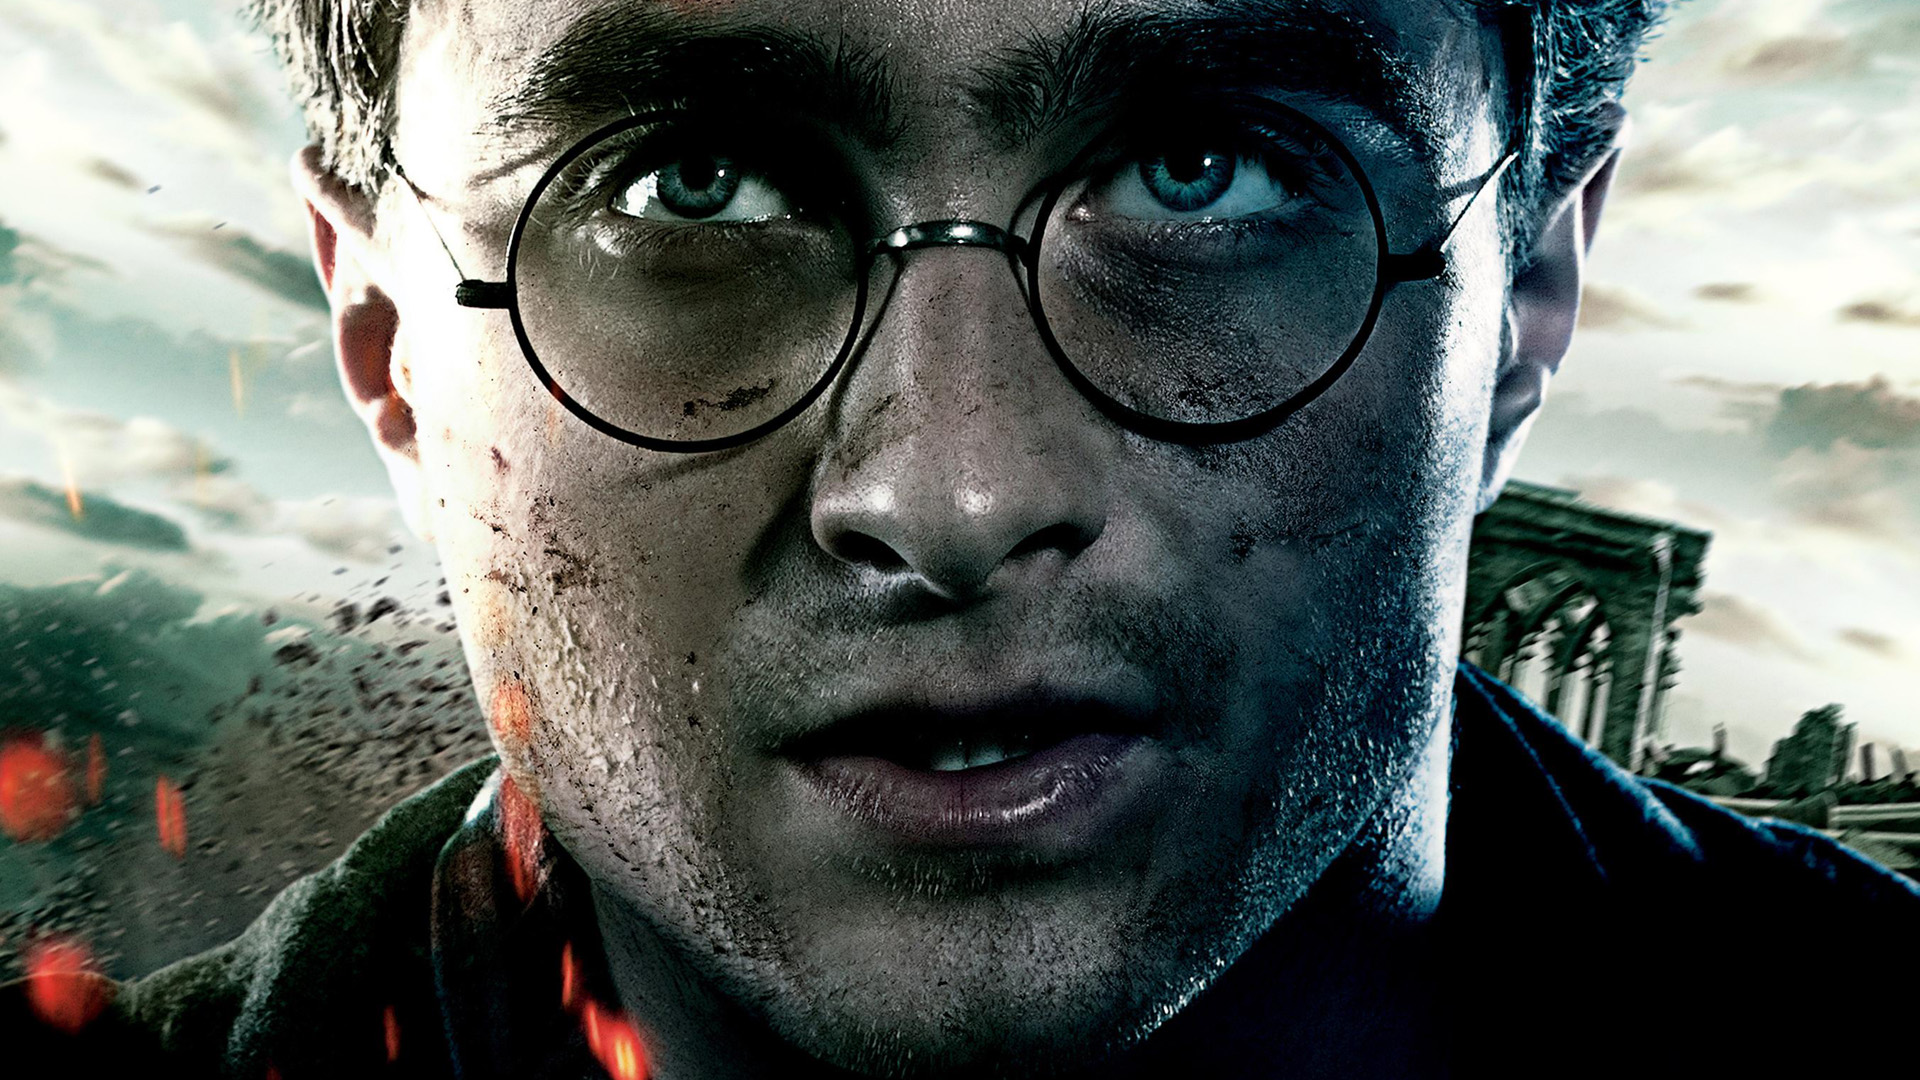 Harry Potter Cameraman : Harry potter and the deathly hallows: part 2 hd wallpaper